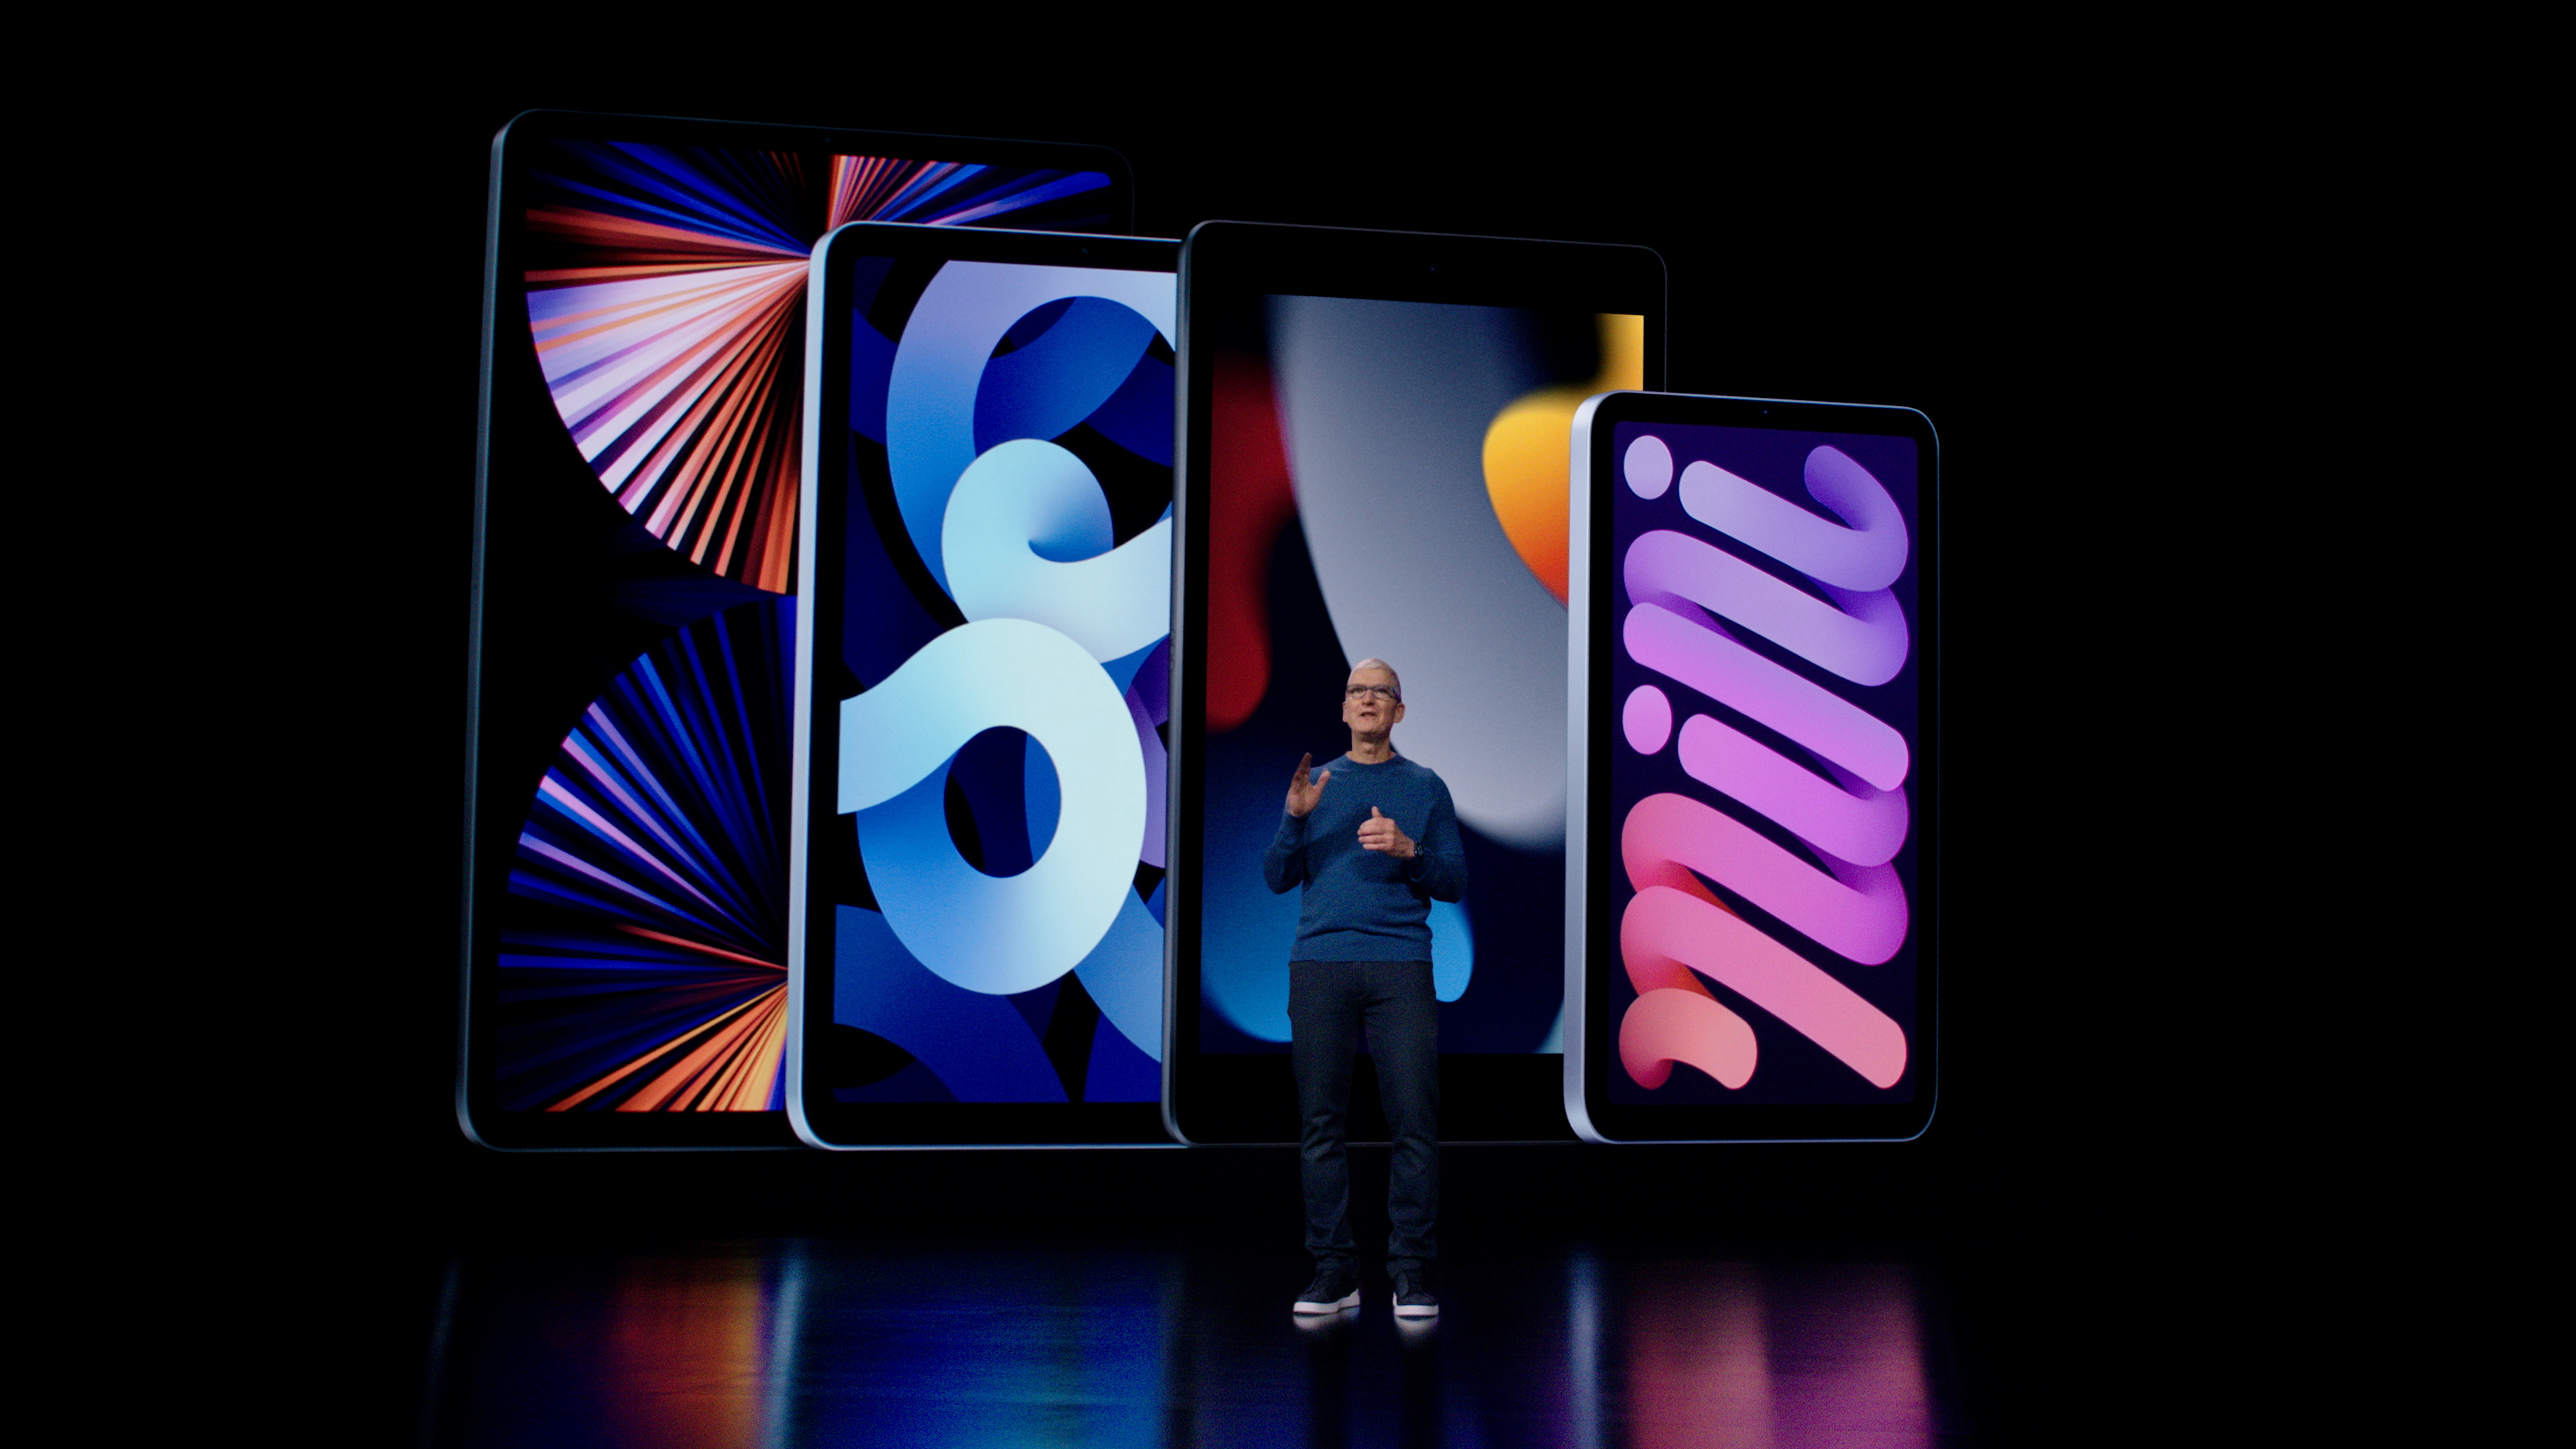 Apple CEO Tim Cook introduces the latest iPad and iPad mini to the iPad lineup during a special event at Apple Park in Cupertino, California broadcast September 14, 2021. Brooks Kraft/Apple Inc/Handout via REUTERS